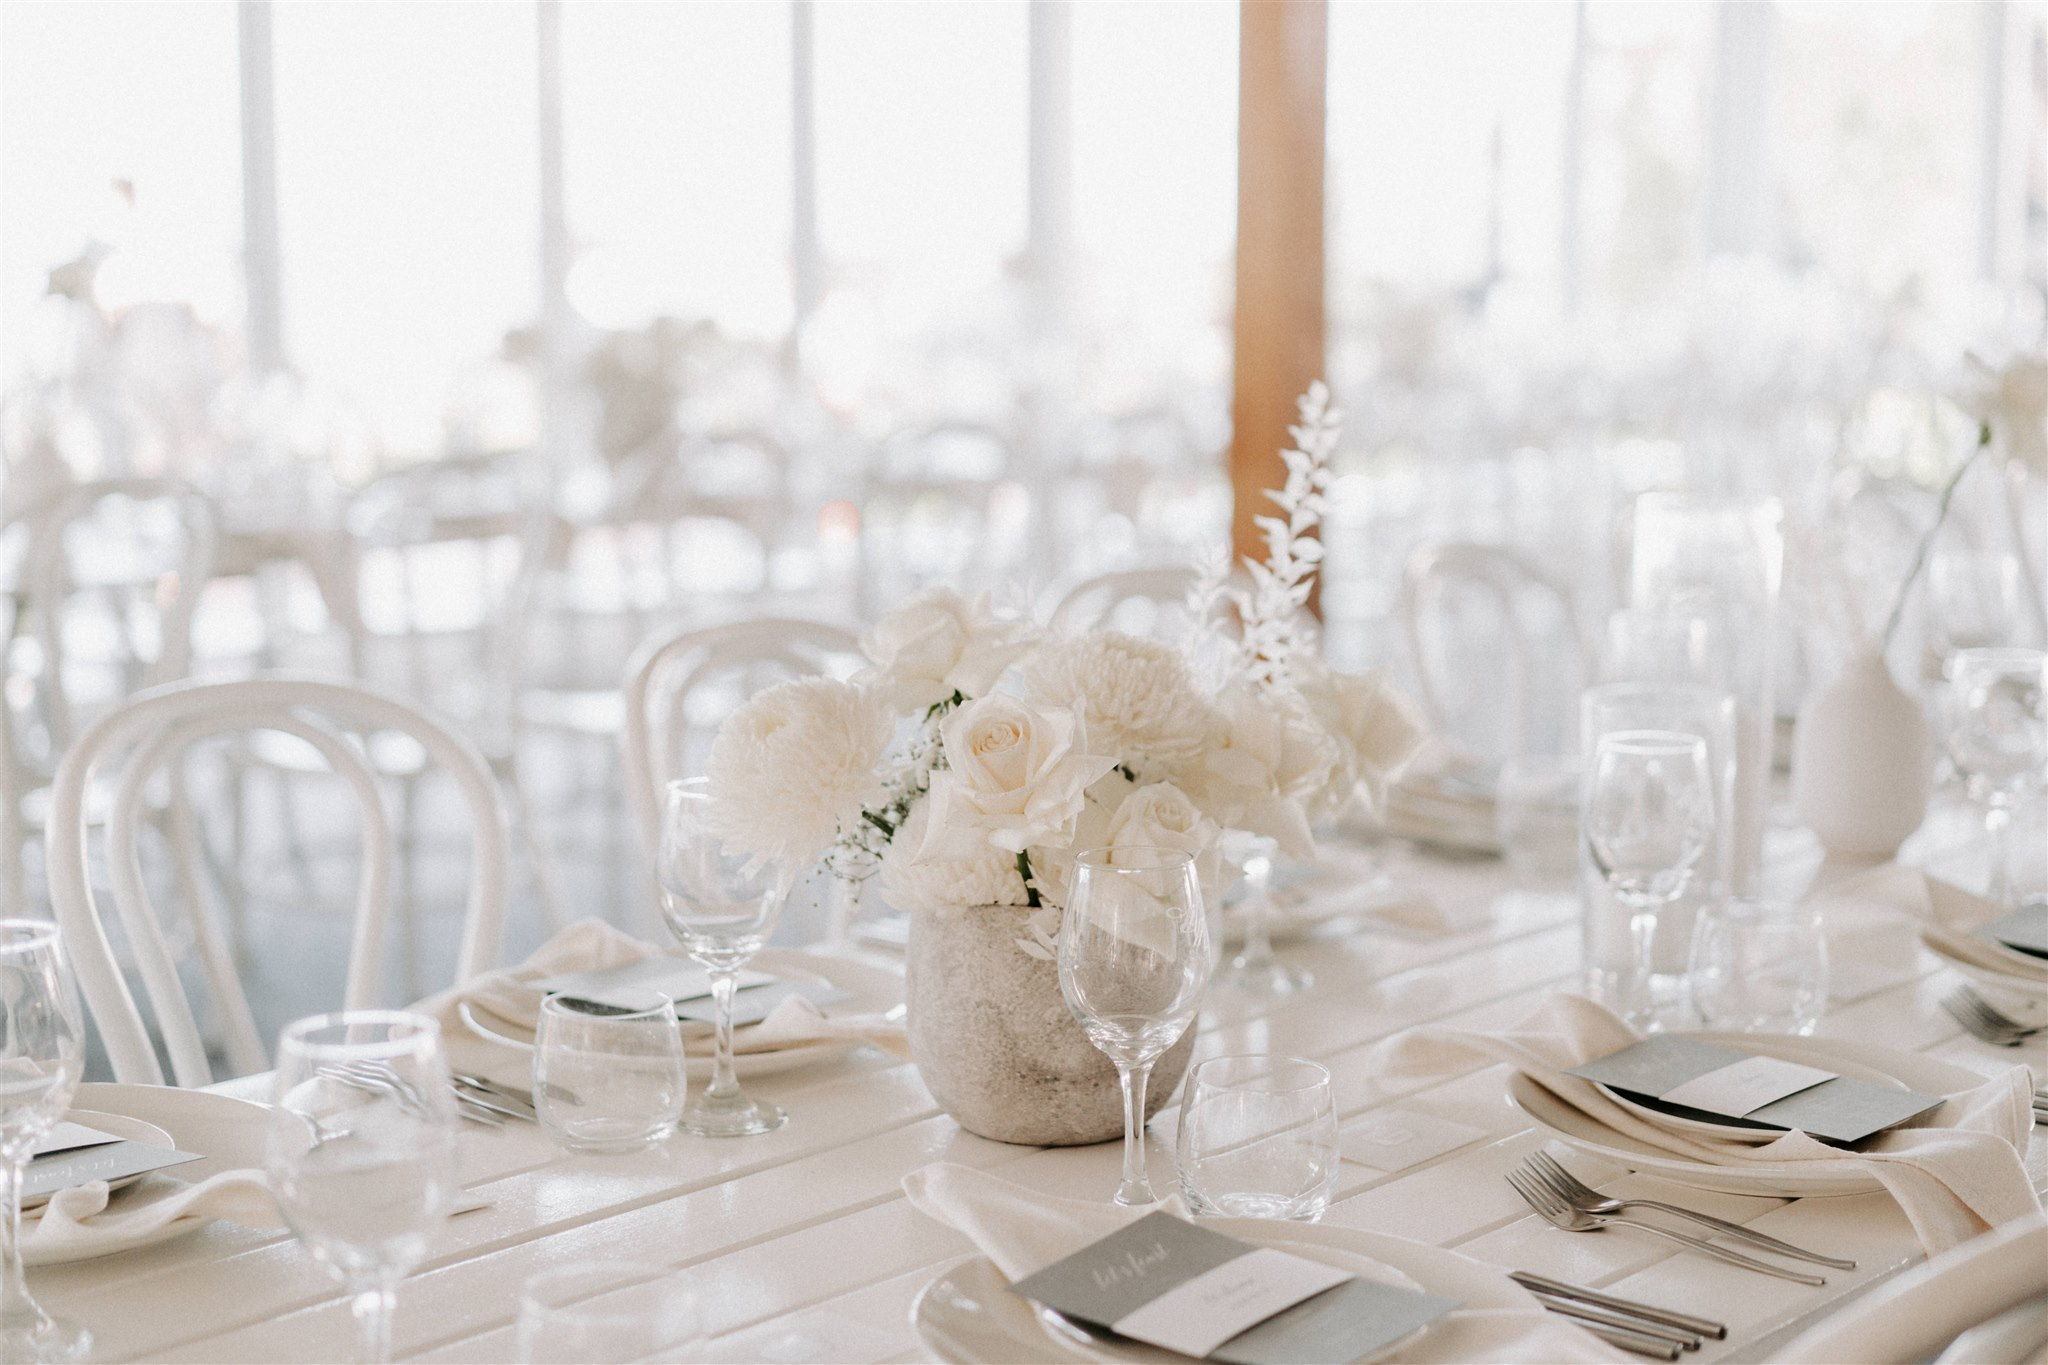 Modern reception table styling featuring textured vases and white blooms